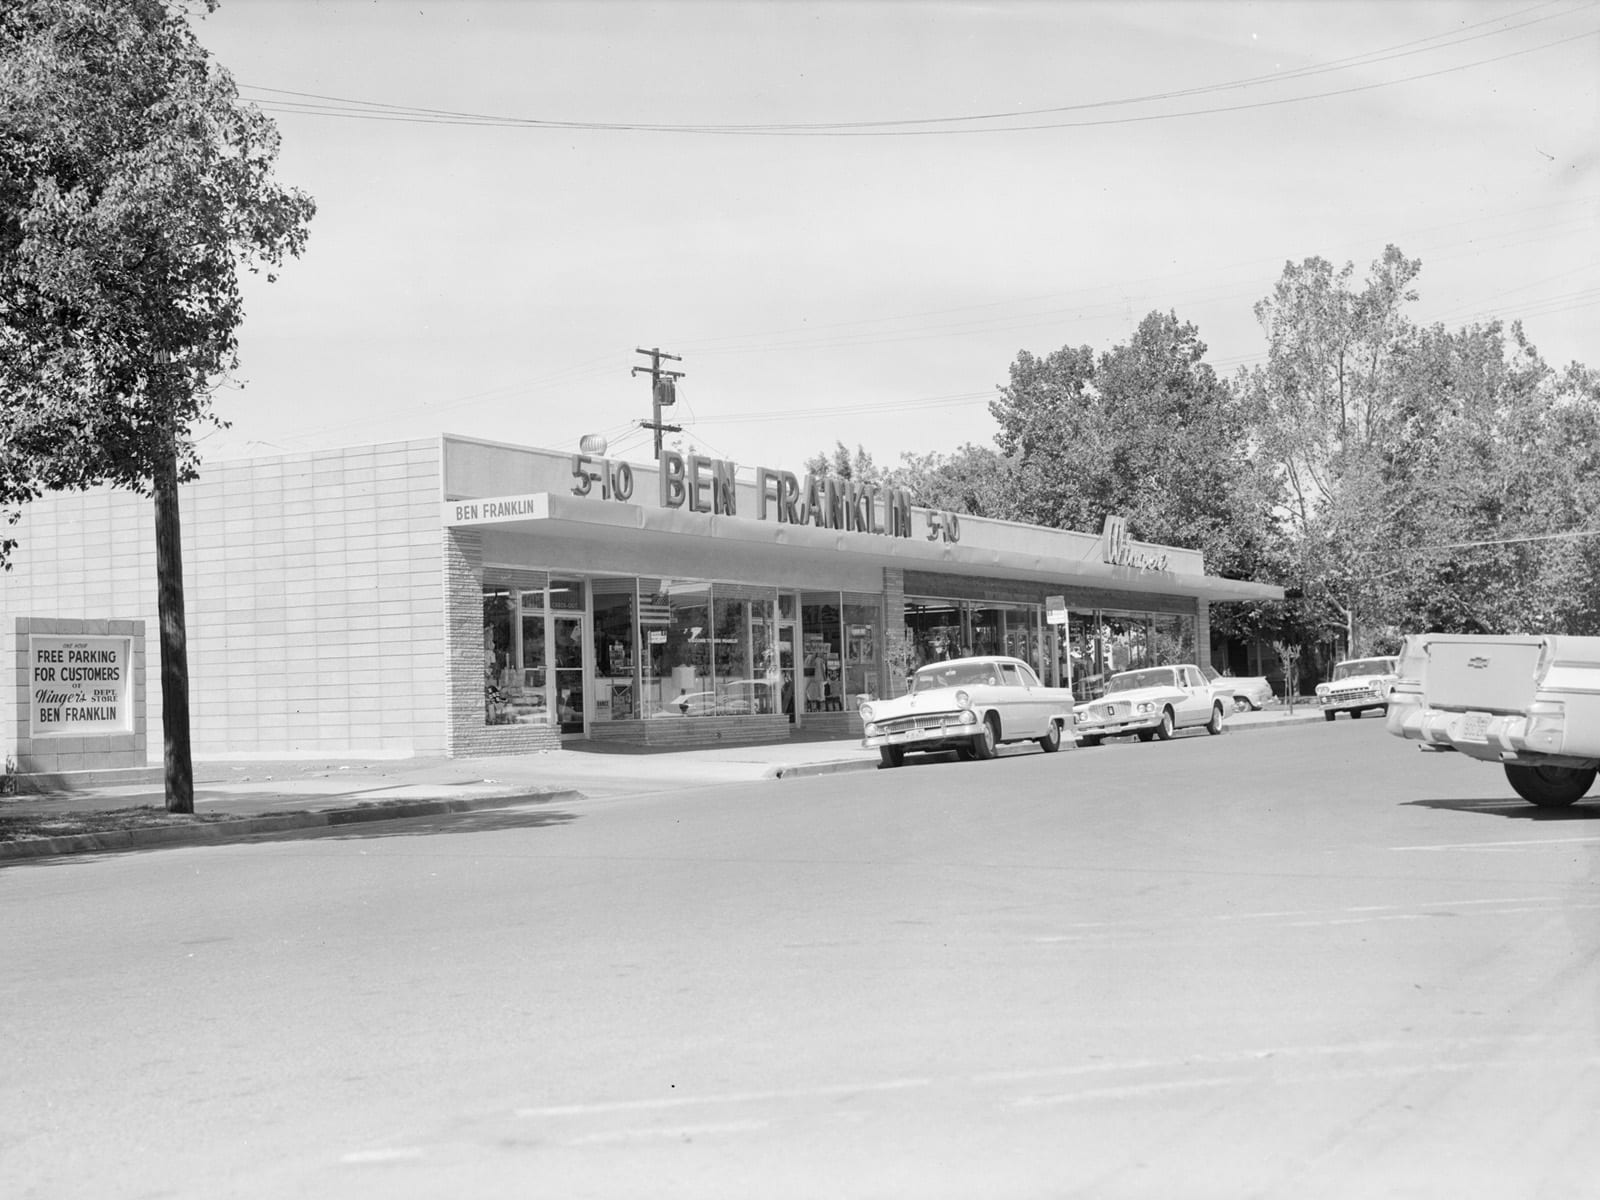 F Street between Second and Third Streets, looking northwest, 1957